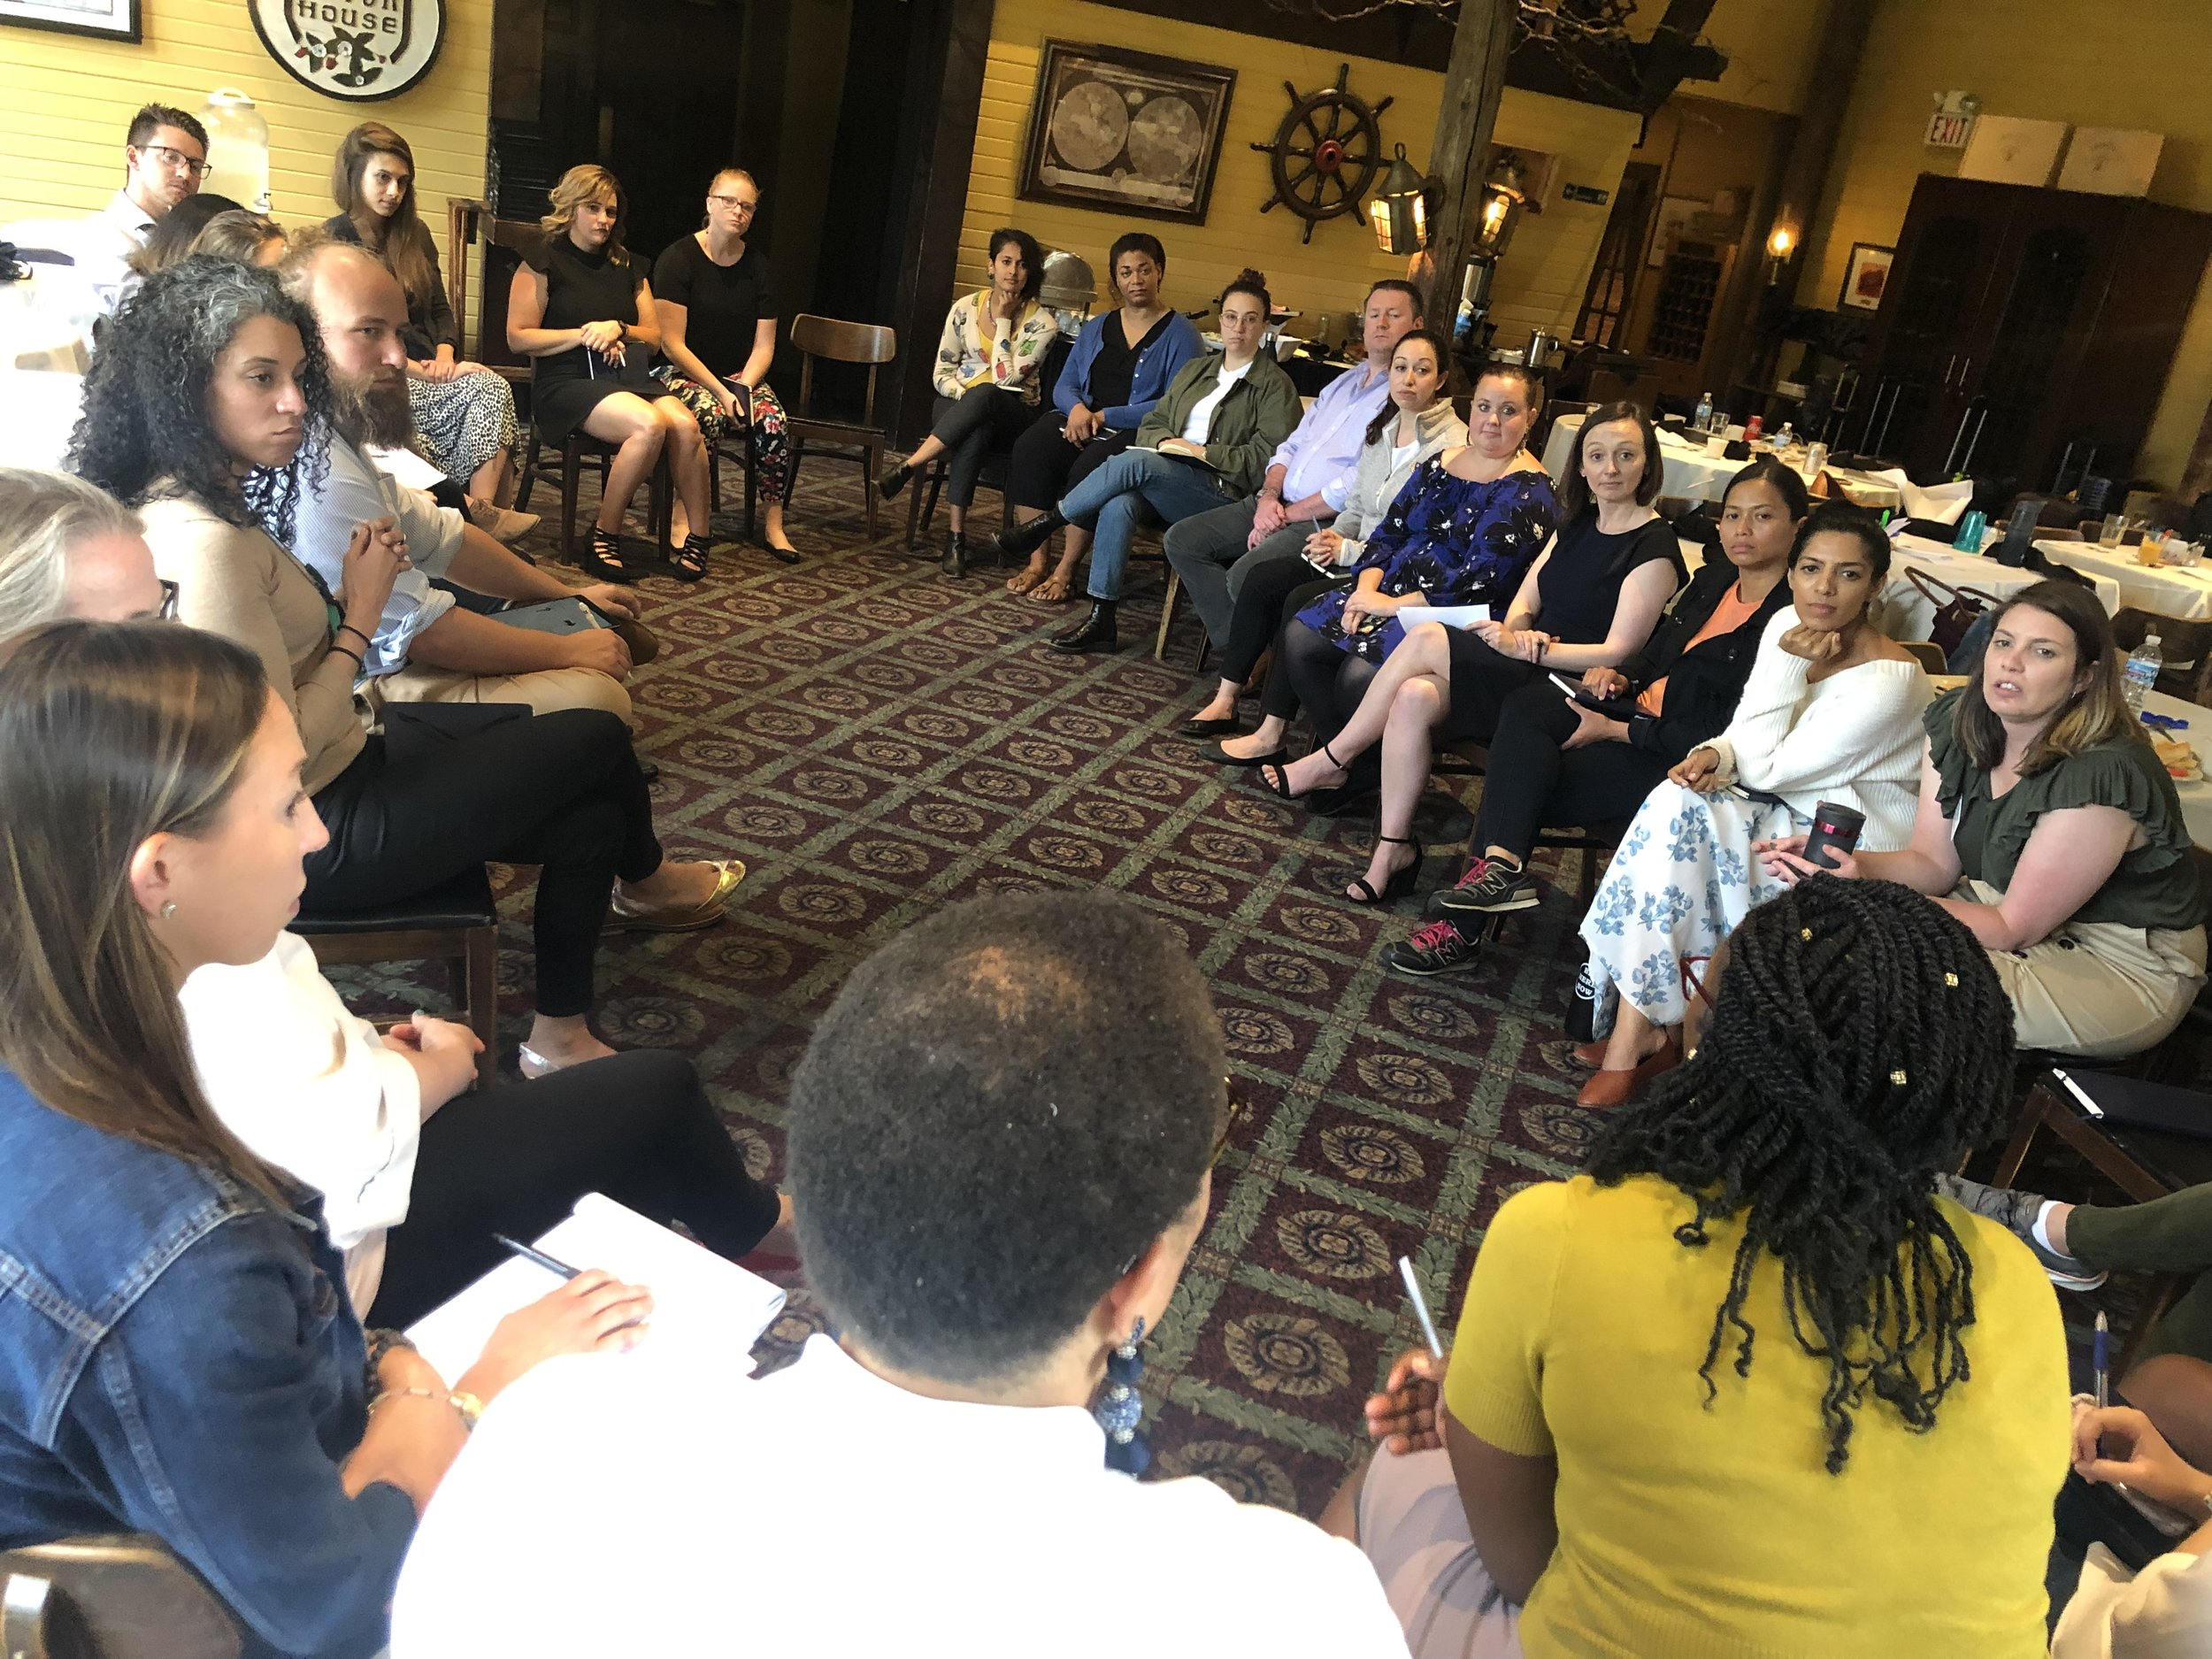 Fellows and staff reflect on the convening